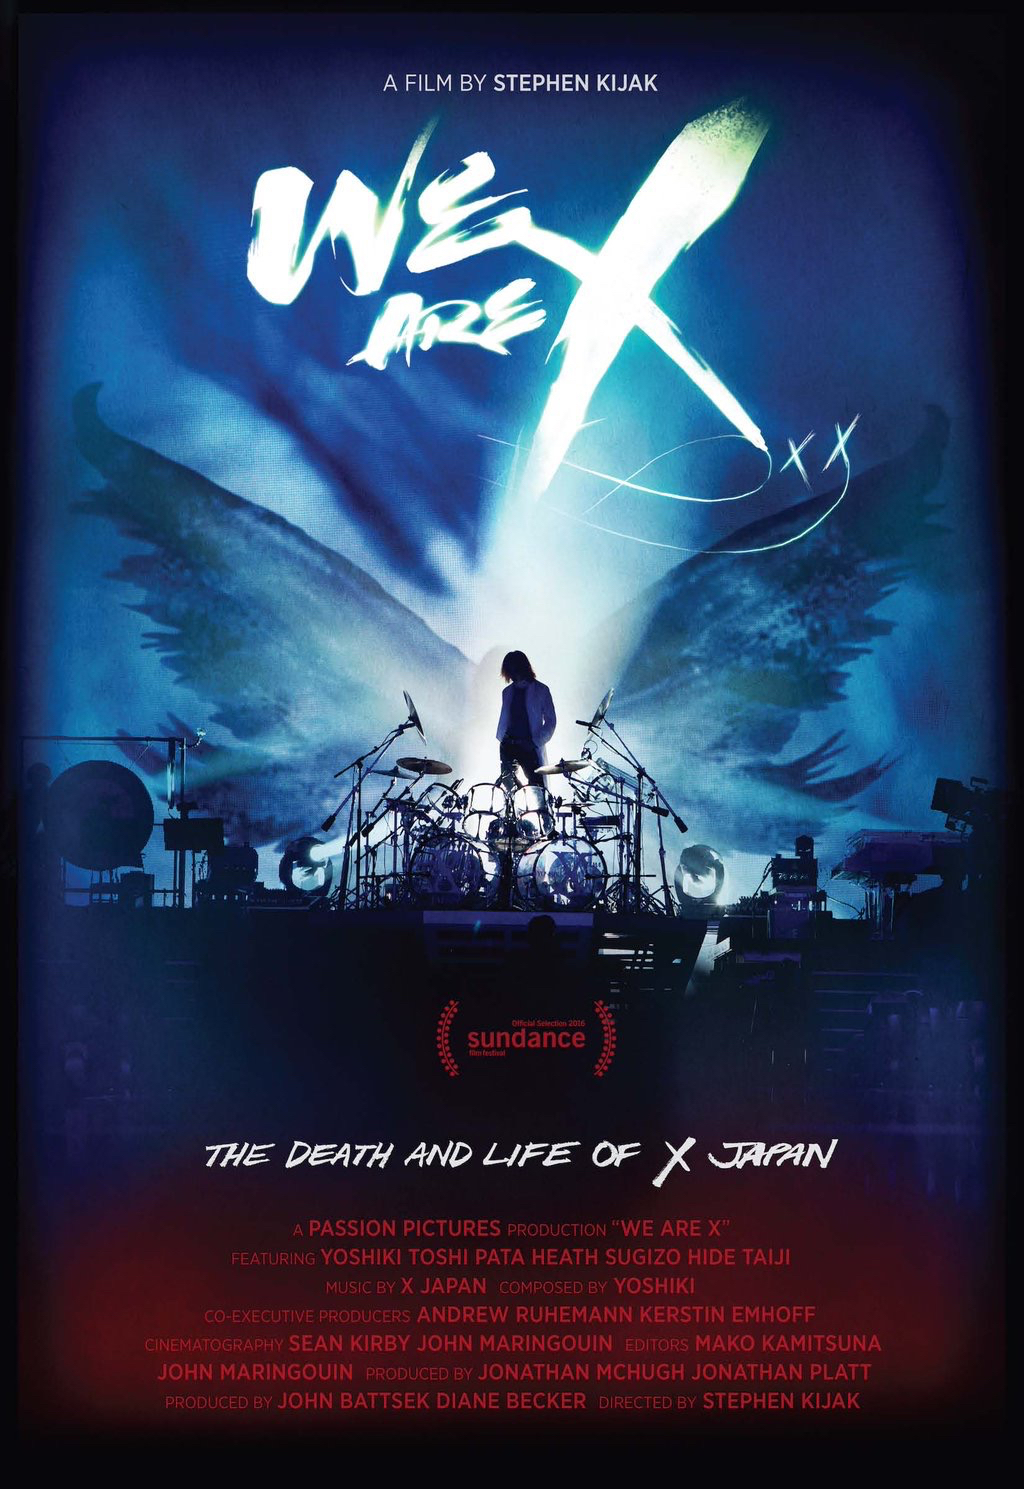 The New Music Documentary On Japanese Rock Group X JAPAN Titled WE ARE From Passion Pictures Has Been Accepted To SXSW Film Festival Happening